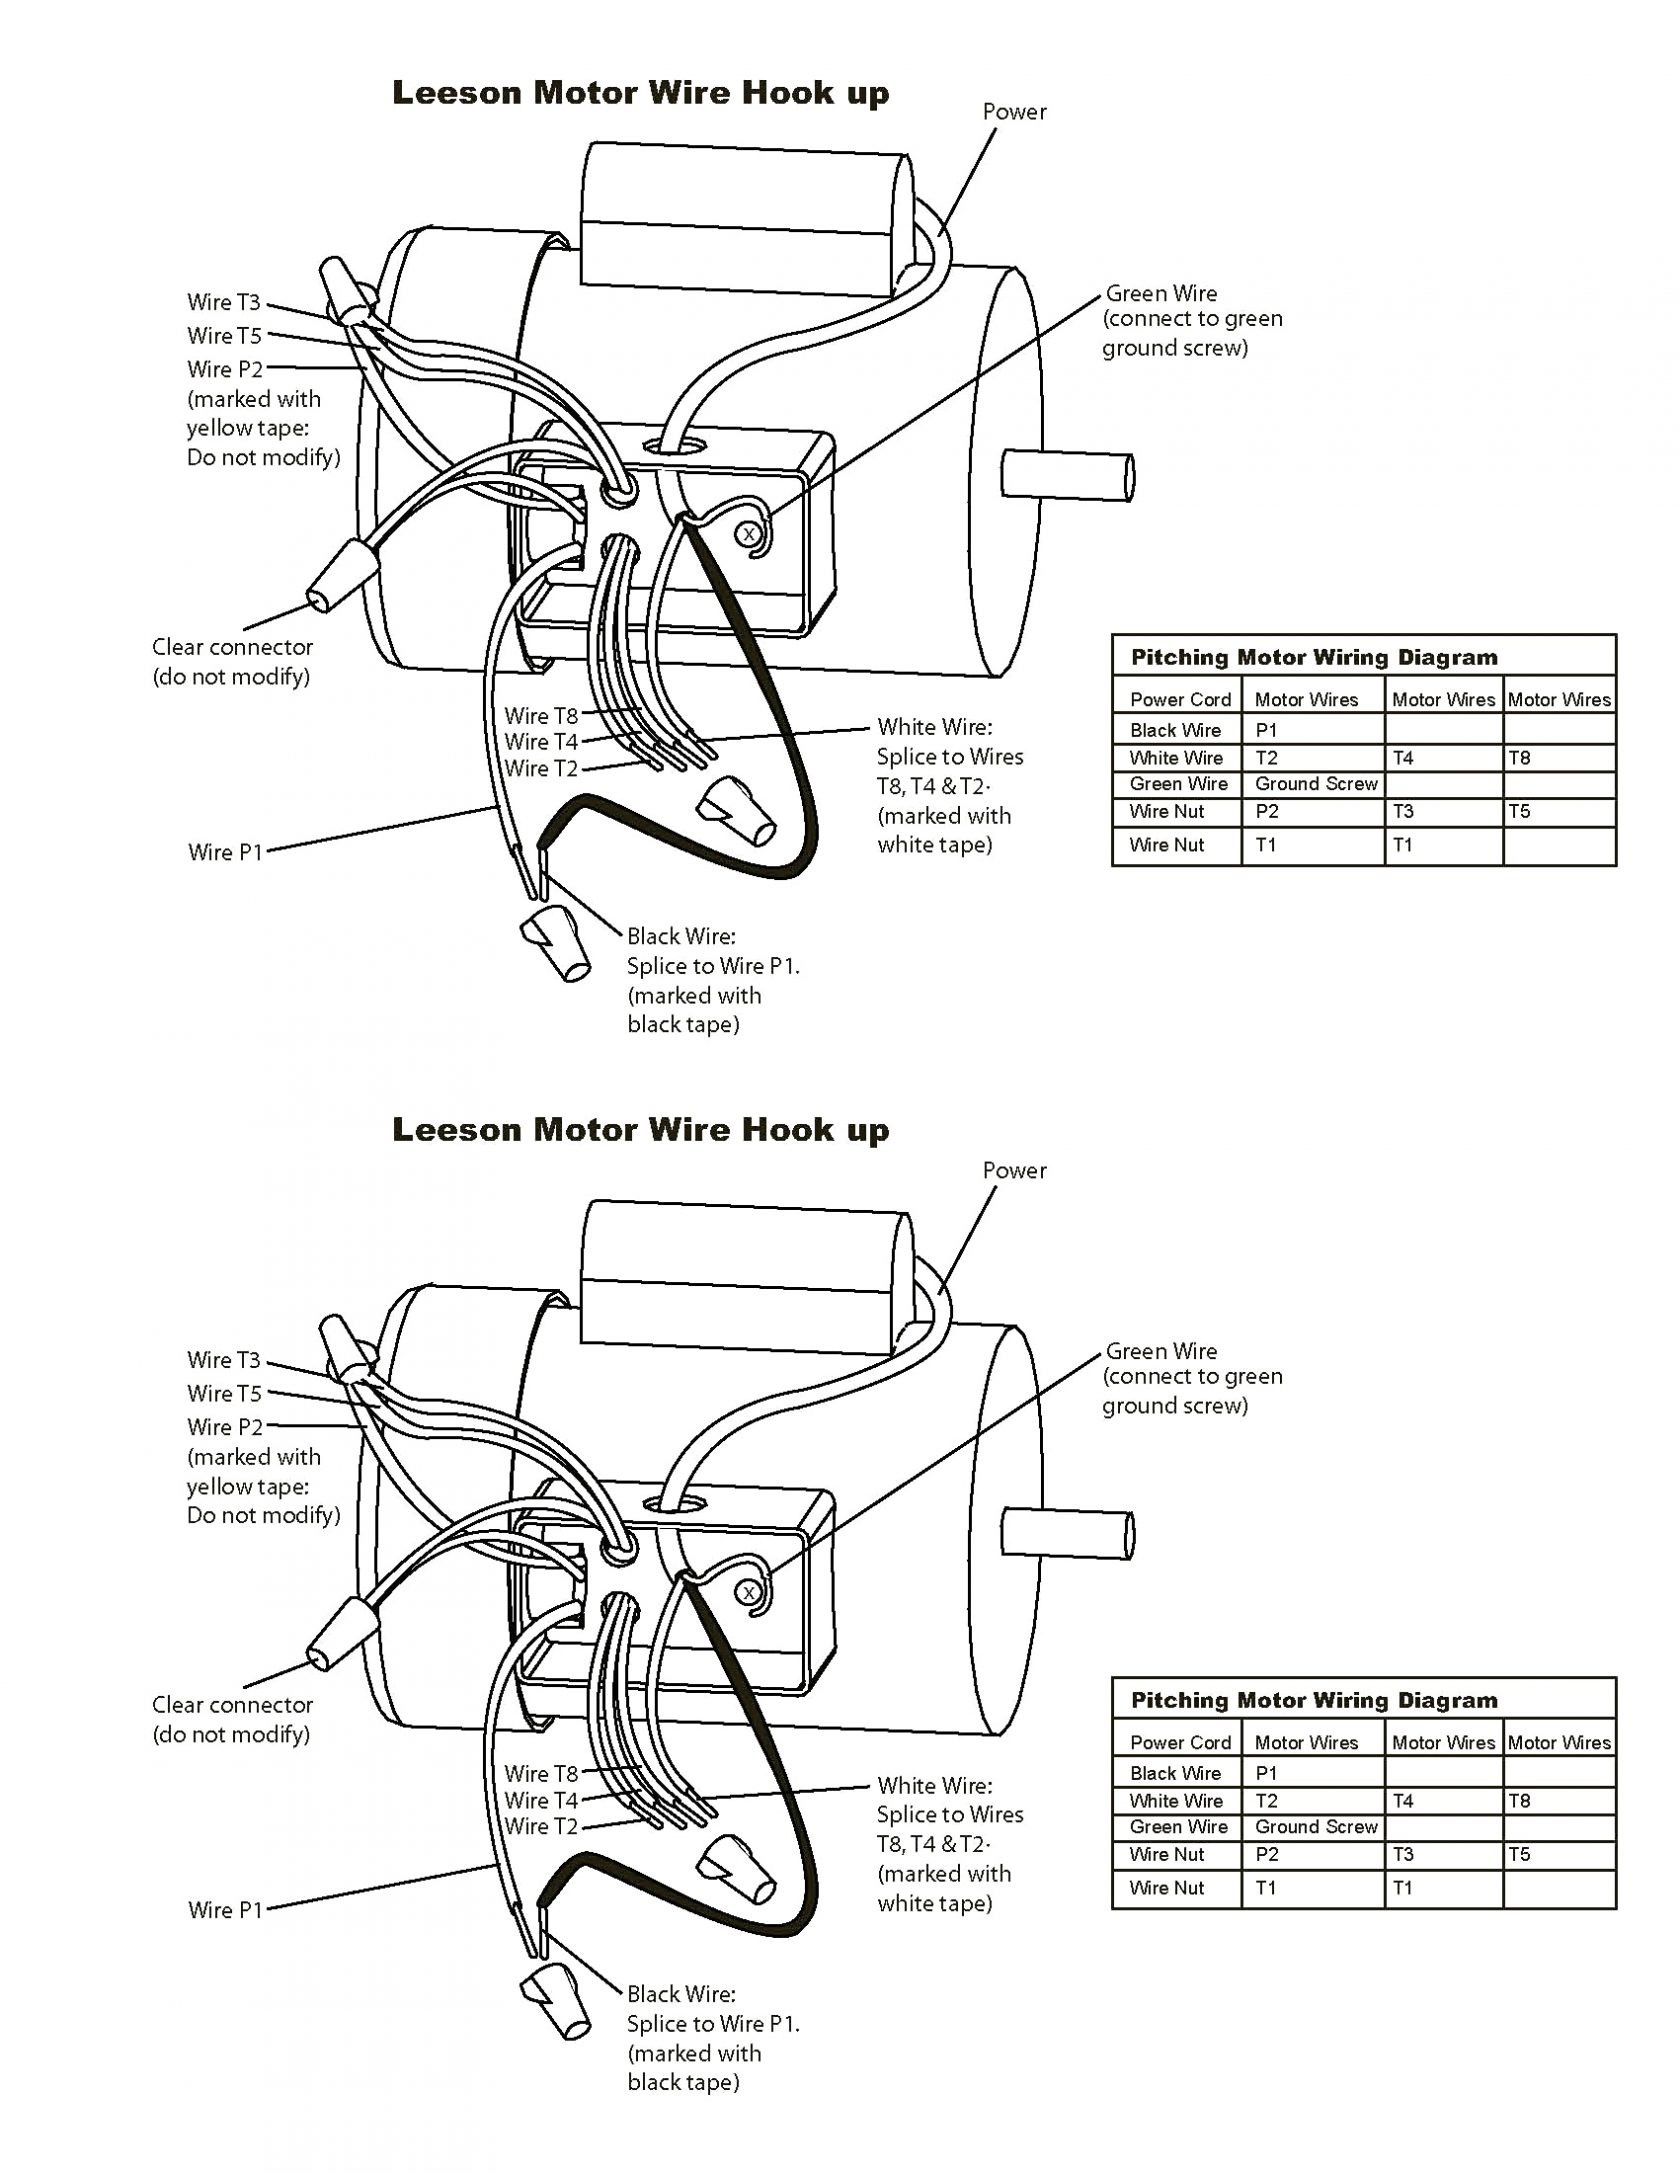 Hayward Pool Pump Motor Wiring Diagram 2 Free Download | Wiring Library - Hayward Super Pump Wiring Diagram